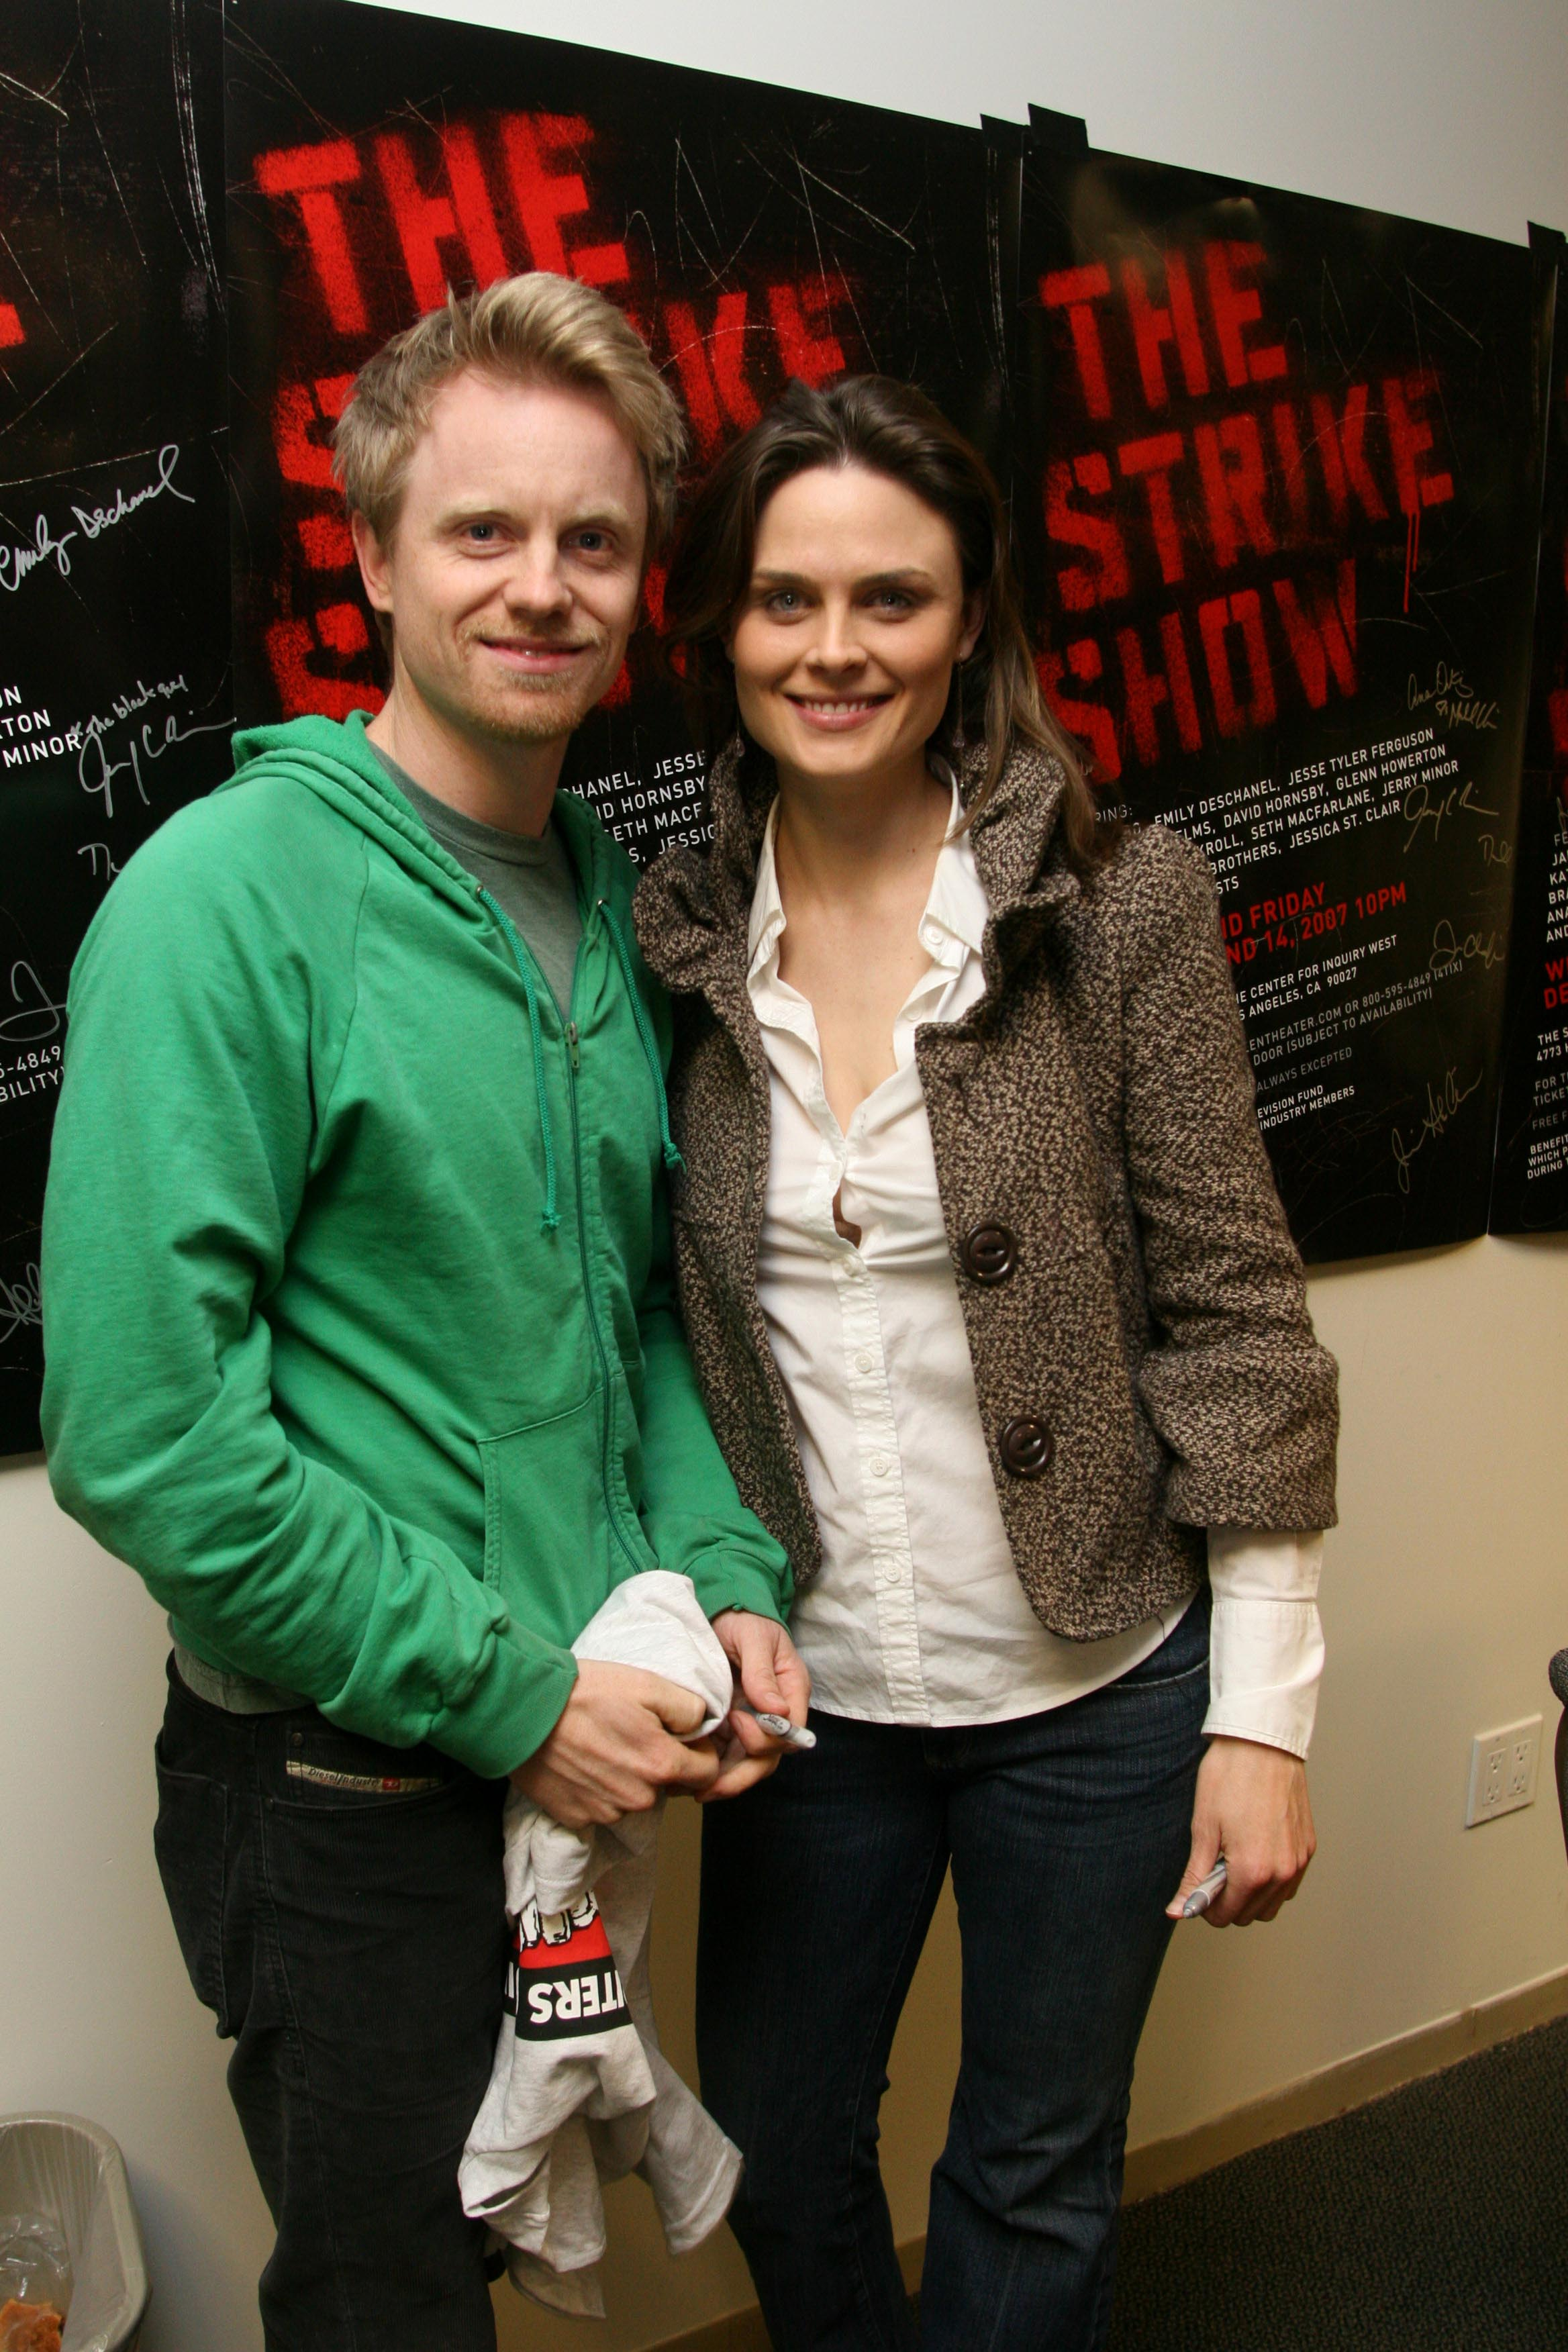 David Hornsby and Emily Deschanel attend The Strike Show to benefit the Motion Picture and Television Fund at the Steve Allen Theatre on December 12, 2007, in Hollywood, California. | Source: Getty Images.